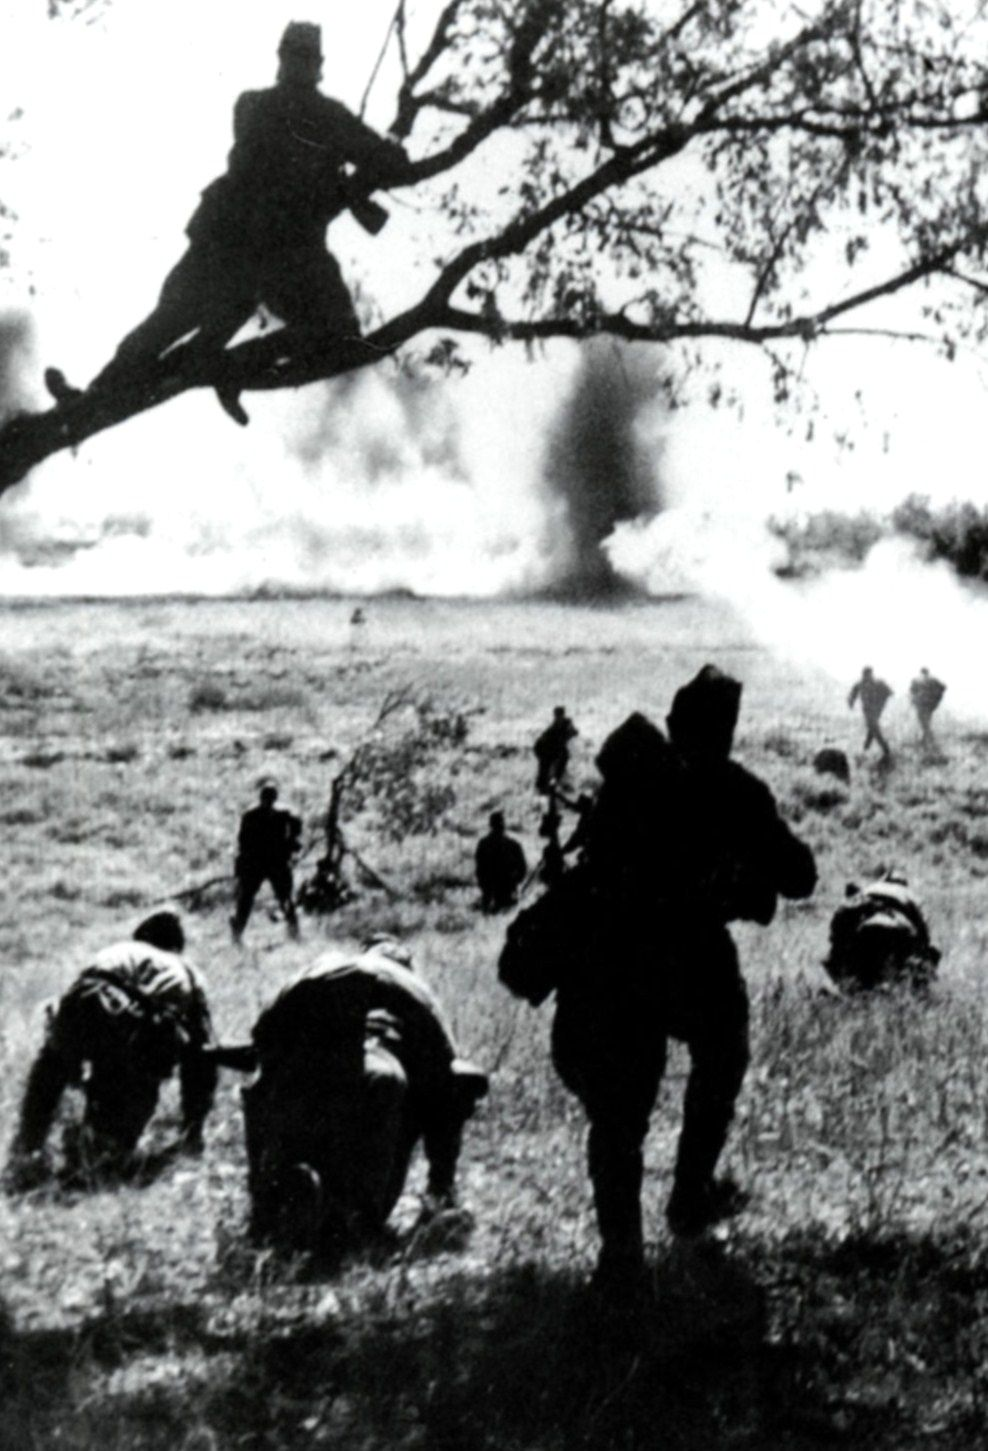 World War II, the Great Patriotic War. Soviet soldiers attacking, July – August 1943. The Battle of Kursk, Russia.